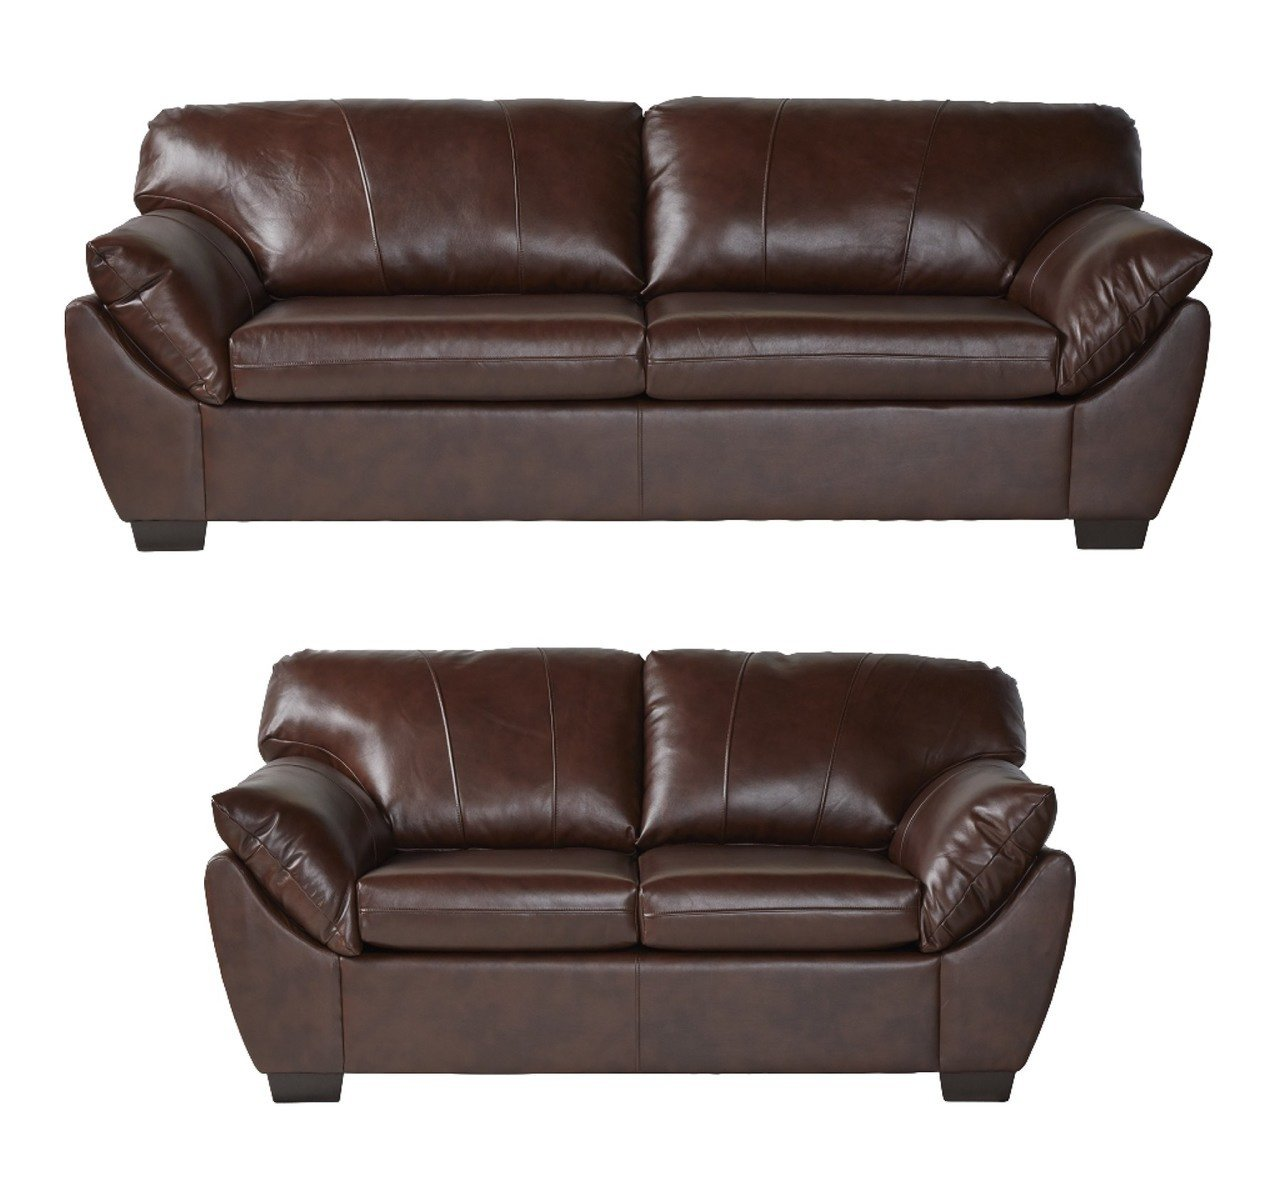 78400 Serta Leather Sofa and Loveseat